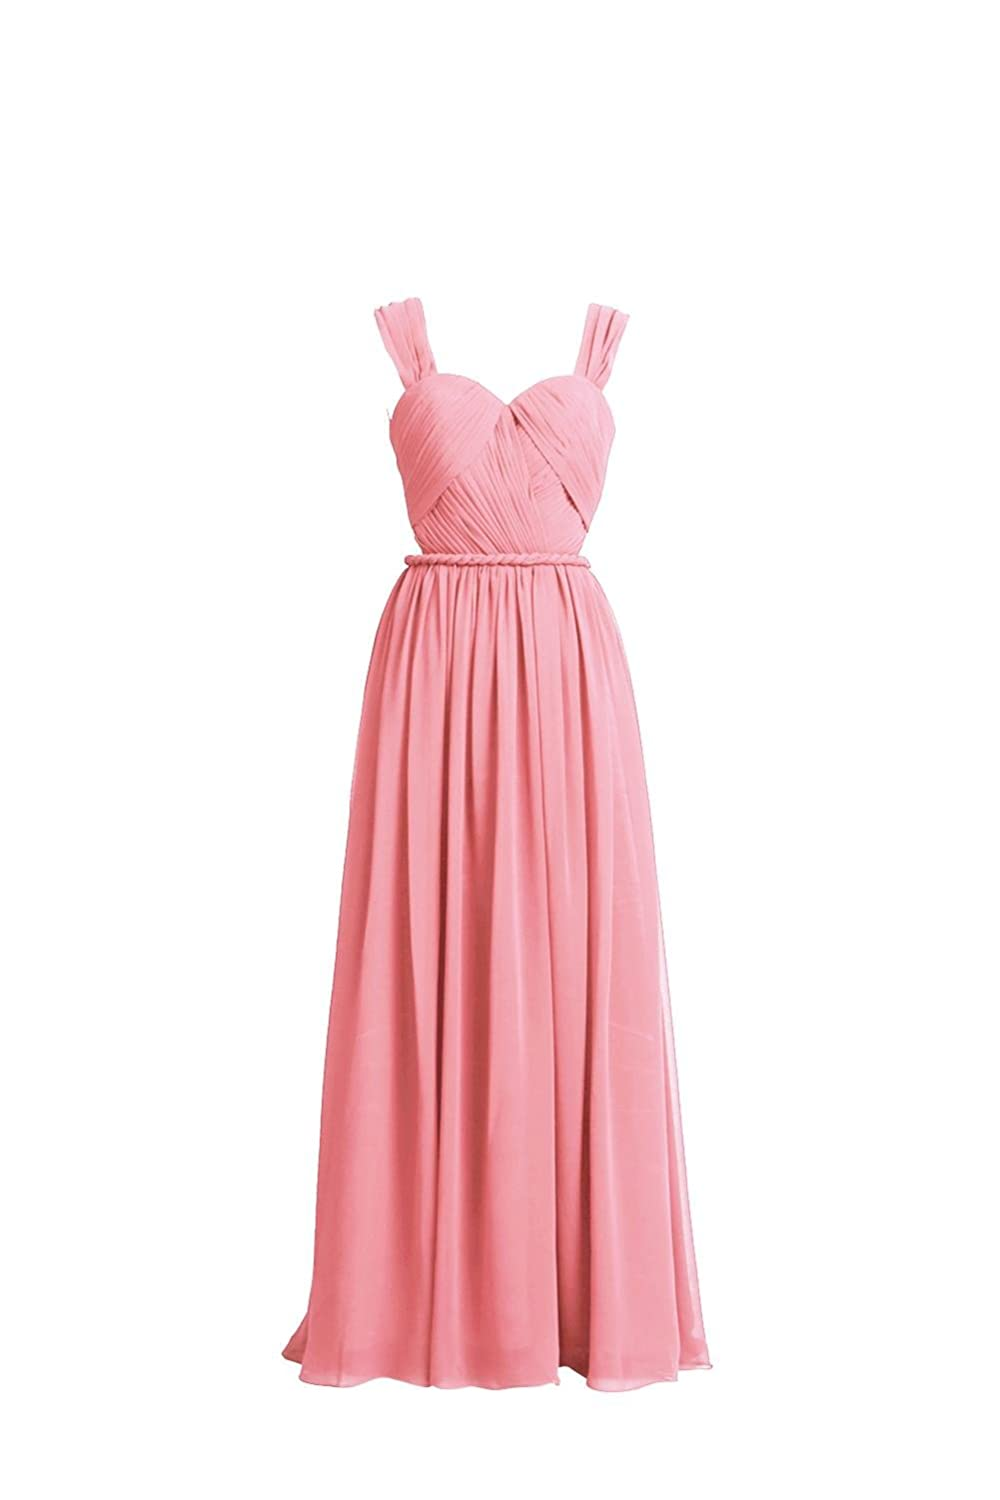 YiYaDawn Women's Backless Long Prom Dress Formal Evening Gown